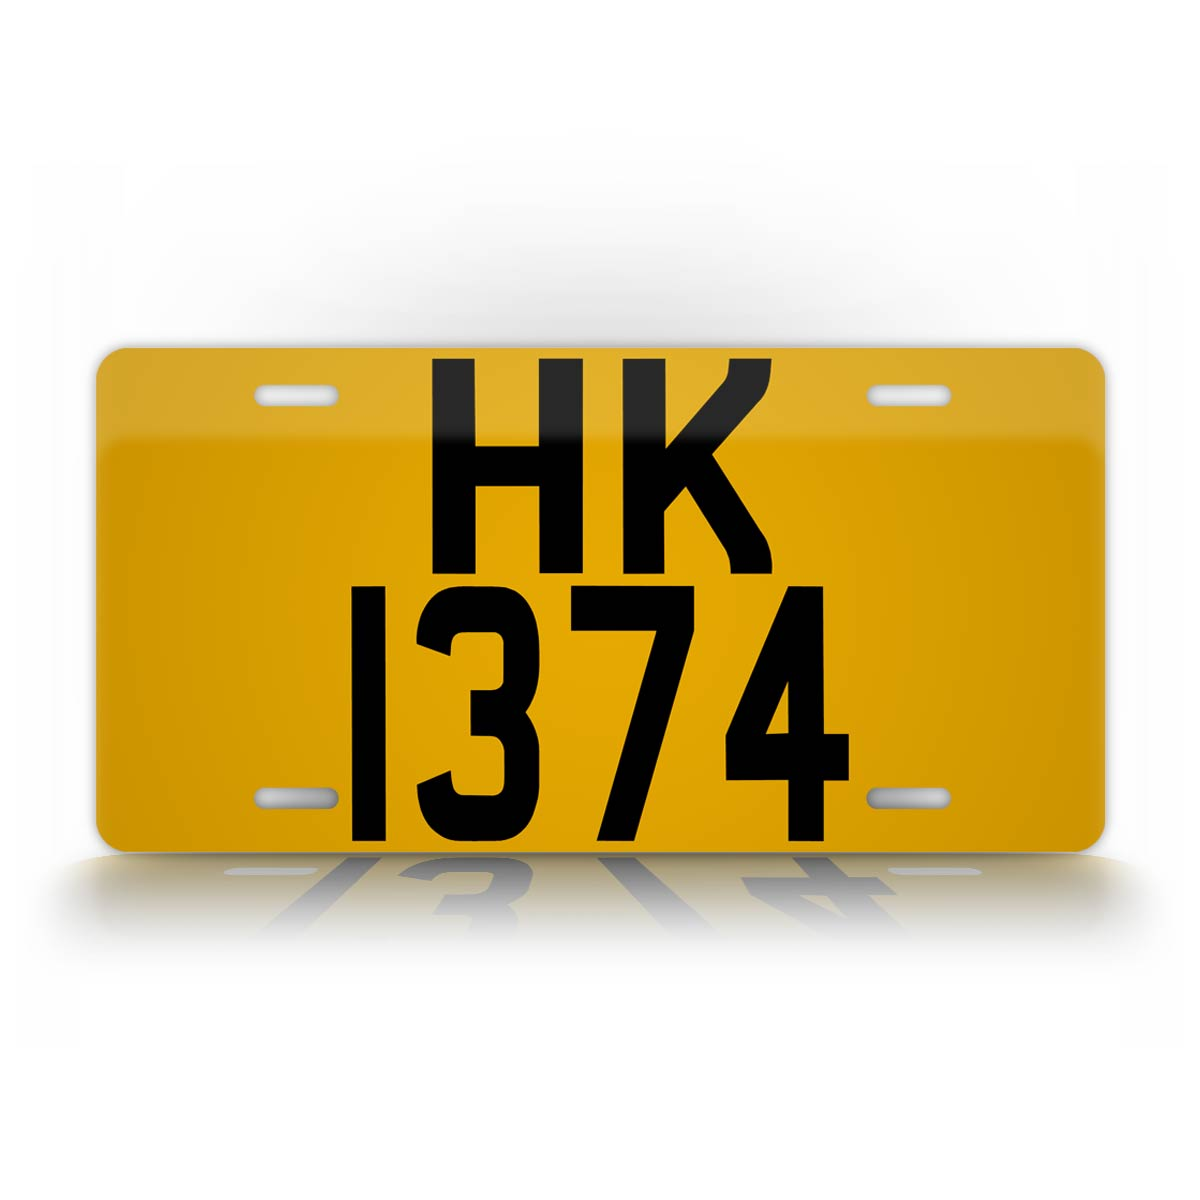 Personalized U.S. Sized Replica Hong Kong License Plate